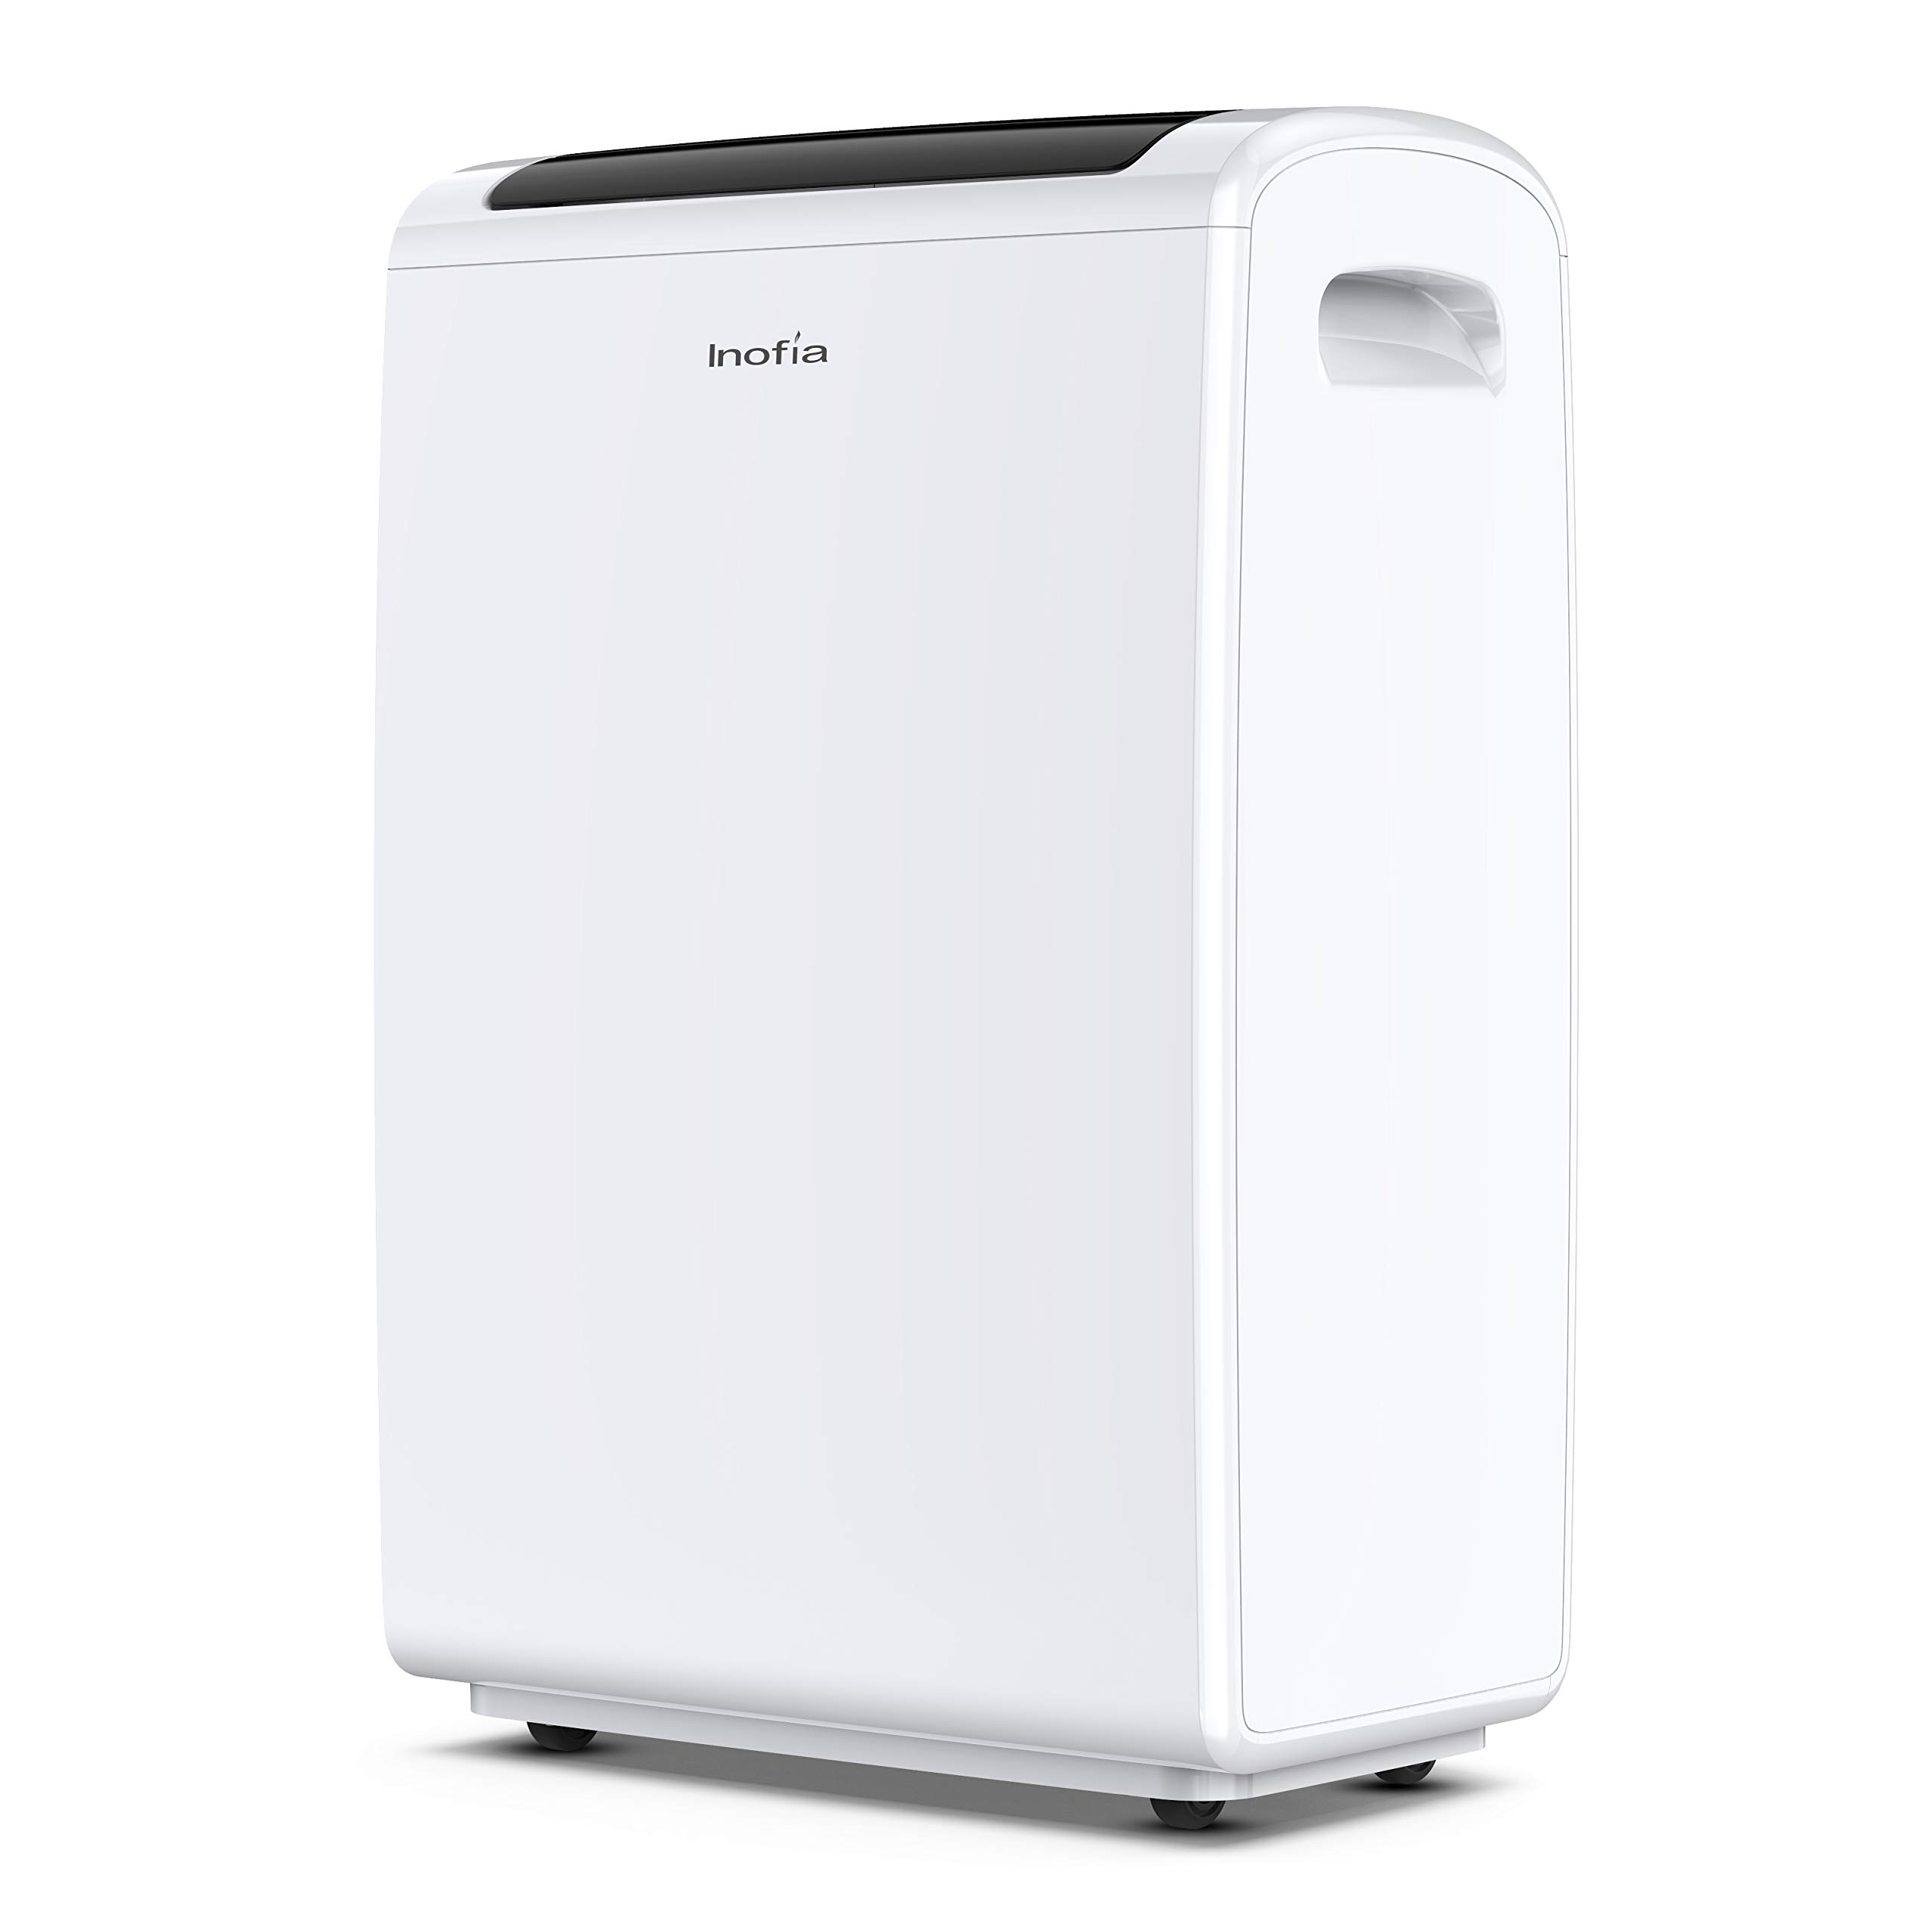 Inofia 70 Pint Dehumidifiers for Home/Basements/Bathroom/Large Room up to 4,000 Sq Ft, Portable dehumidifier with Drain Hose/Laundry Mode/Caster Wheels